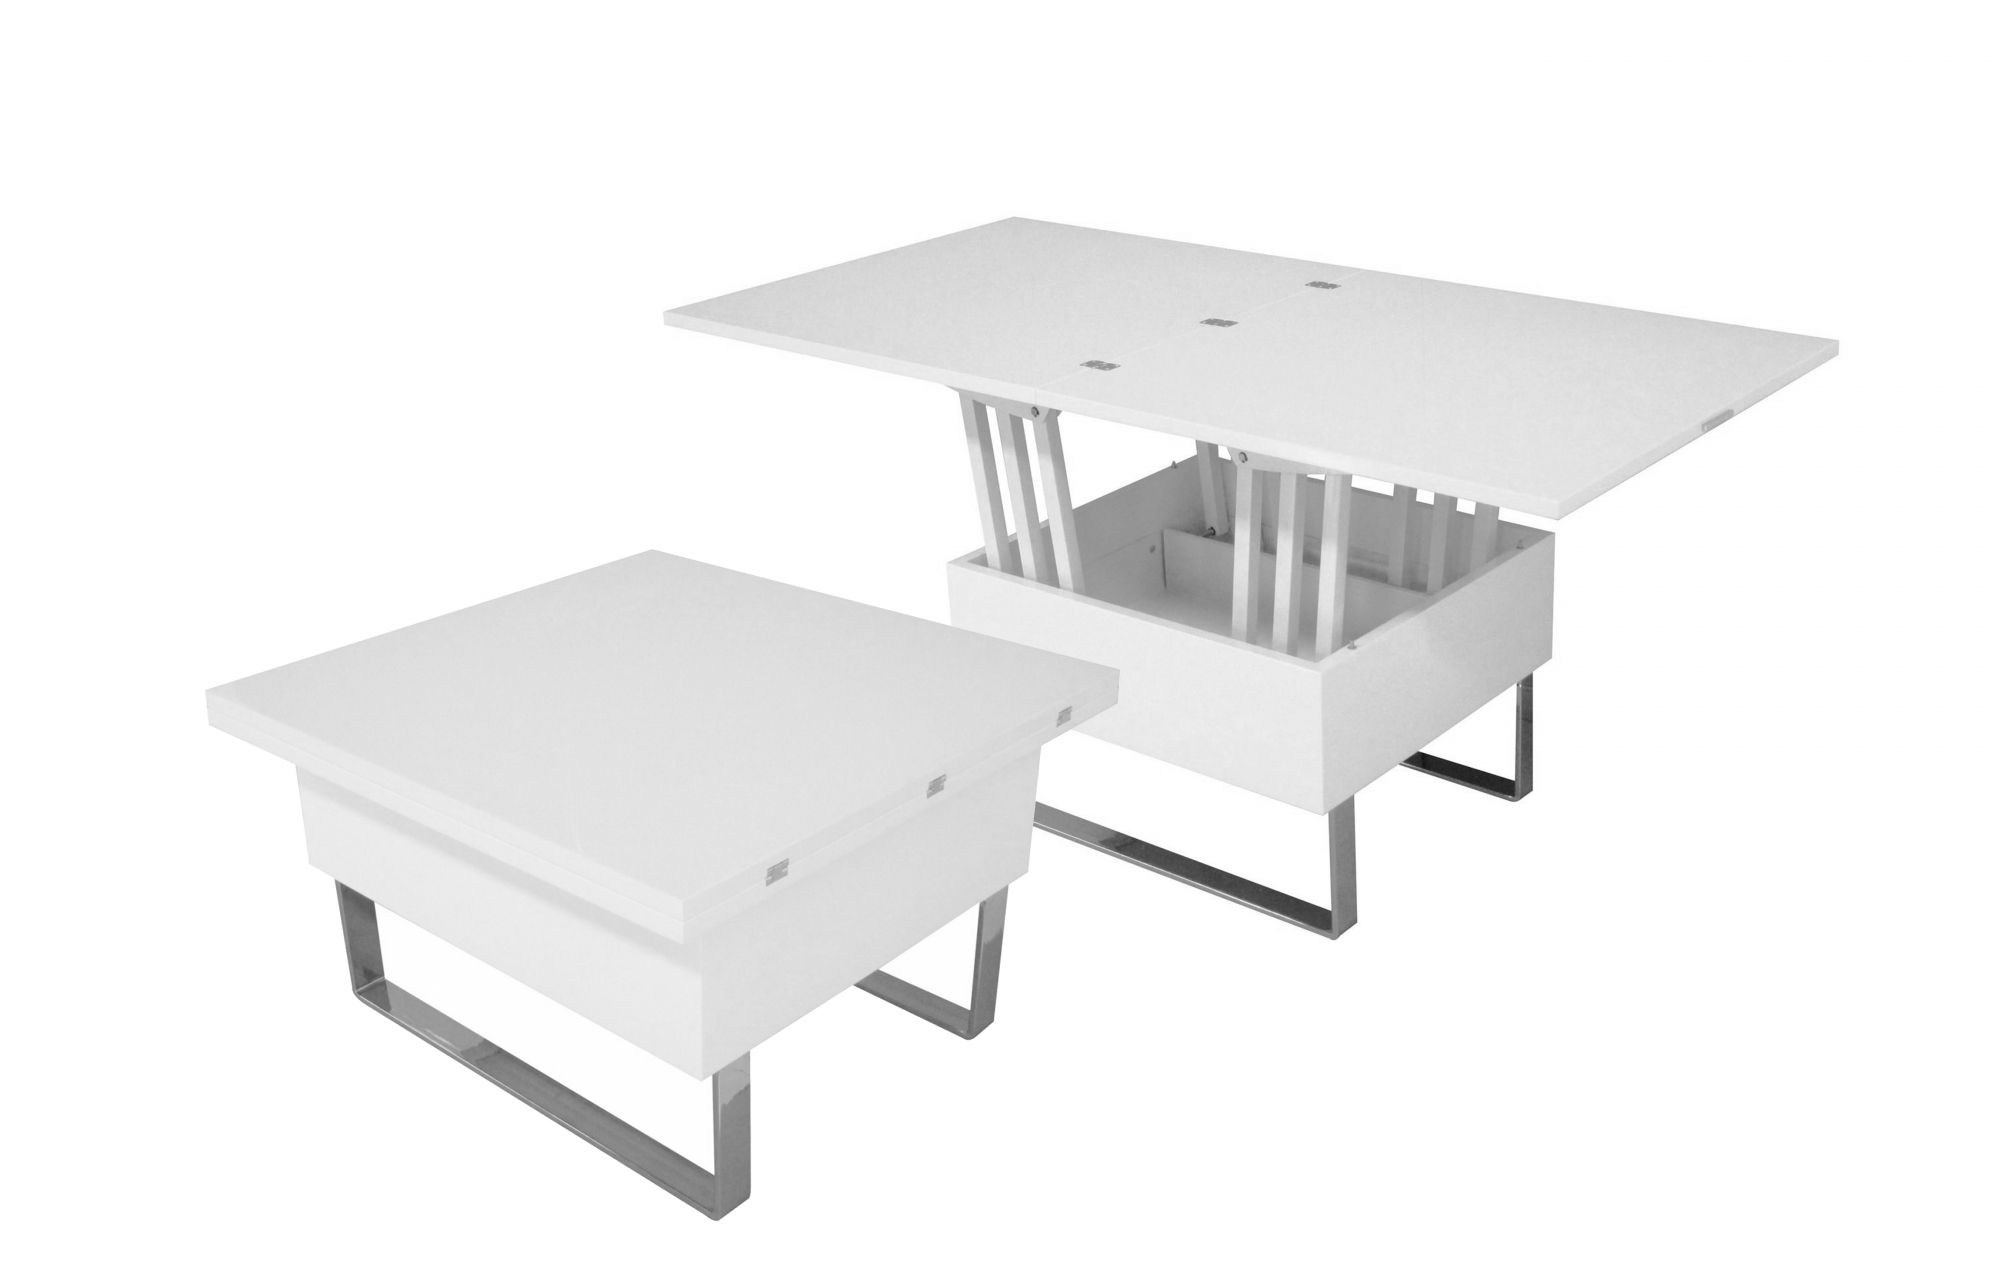 Table Basse Relevable Blanc Laqué Deco In Paris Table Basse Relevable Multifonction Woods Laquee